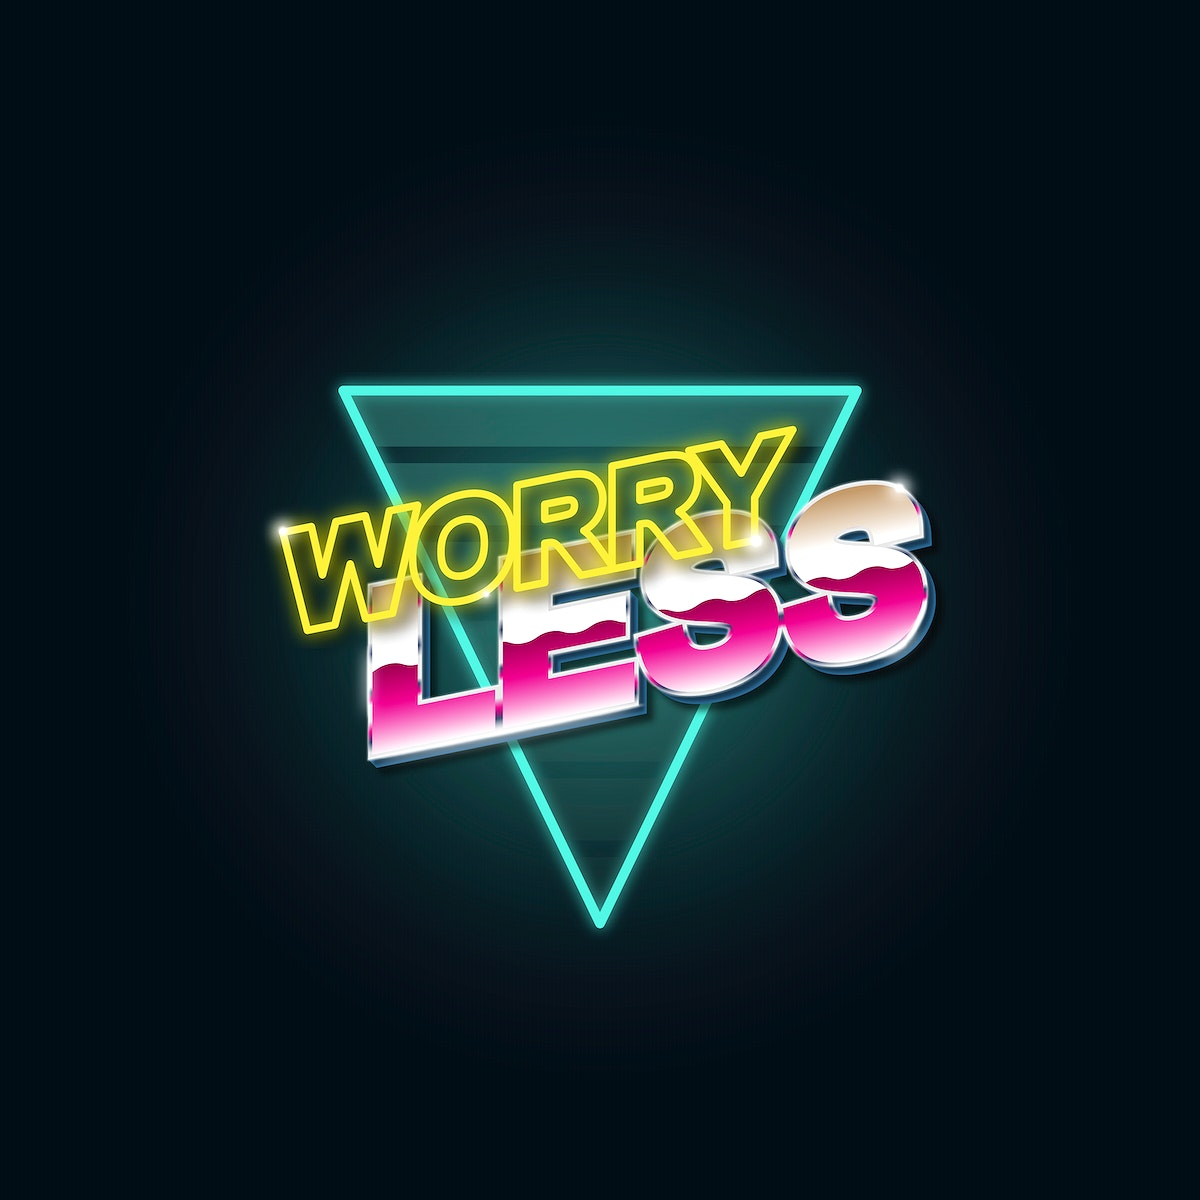 Worry less word with triangle graphic illustration on black background